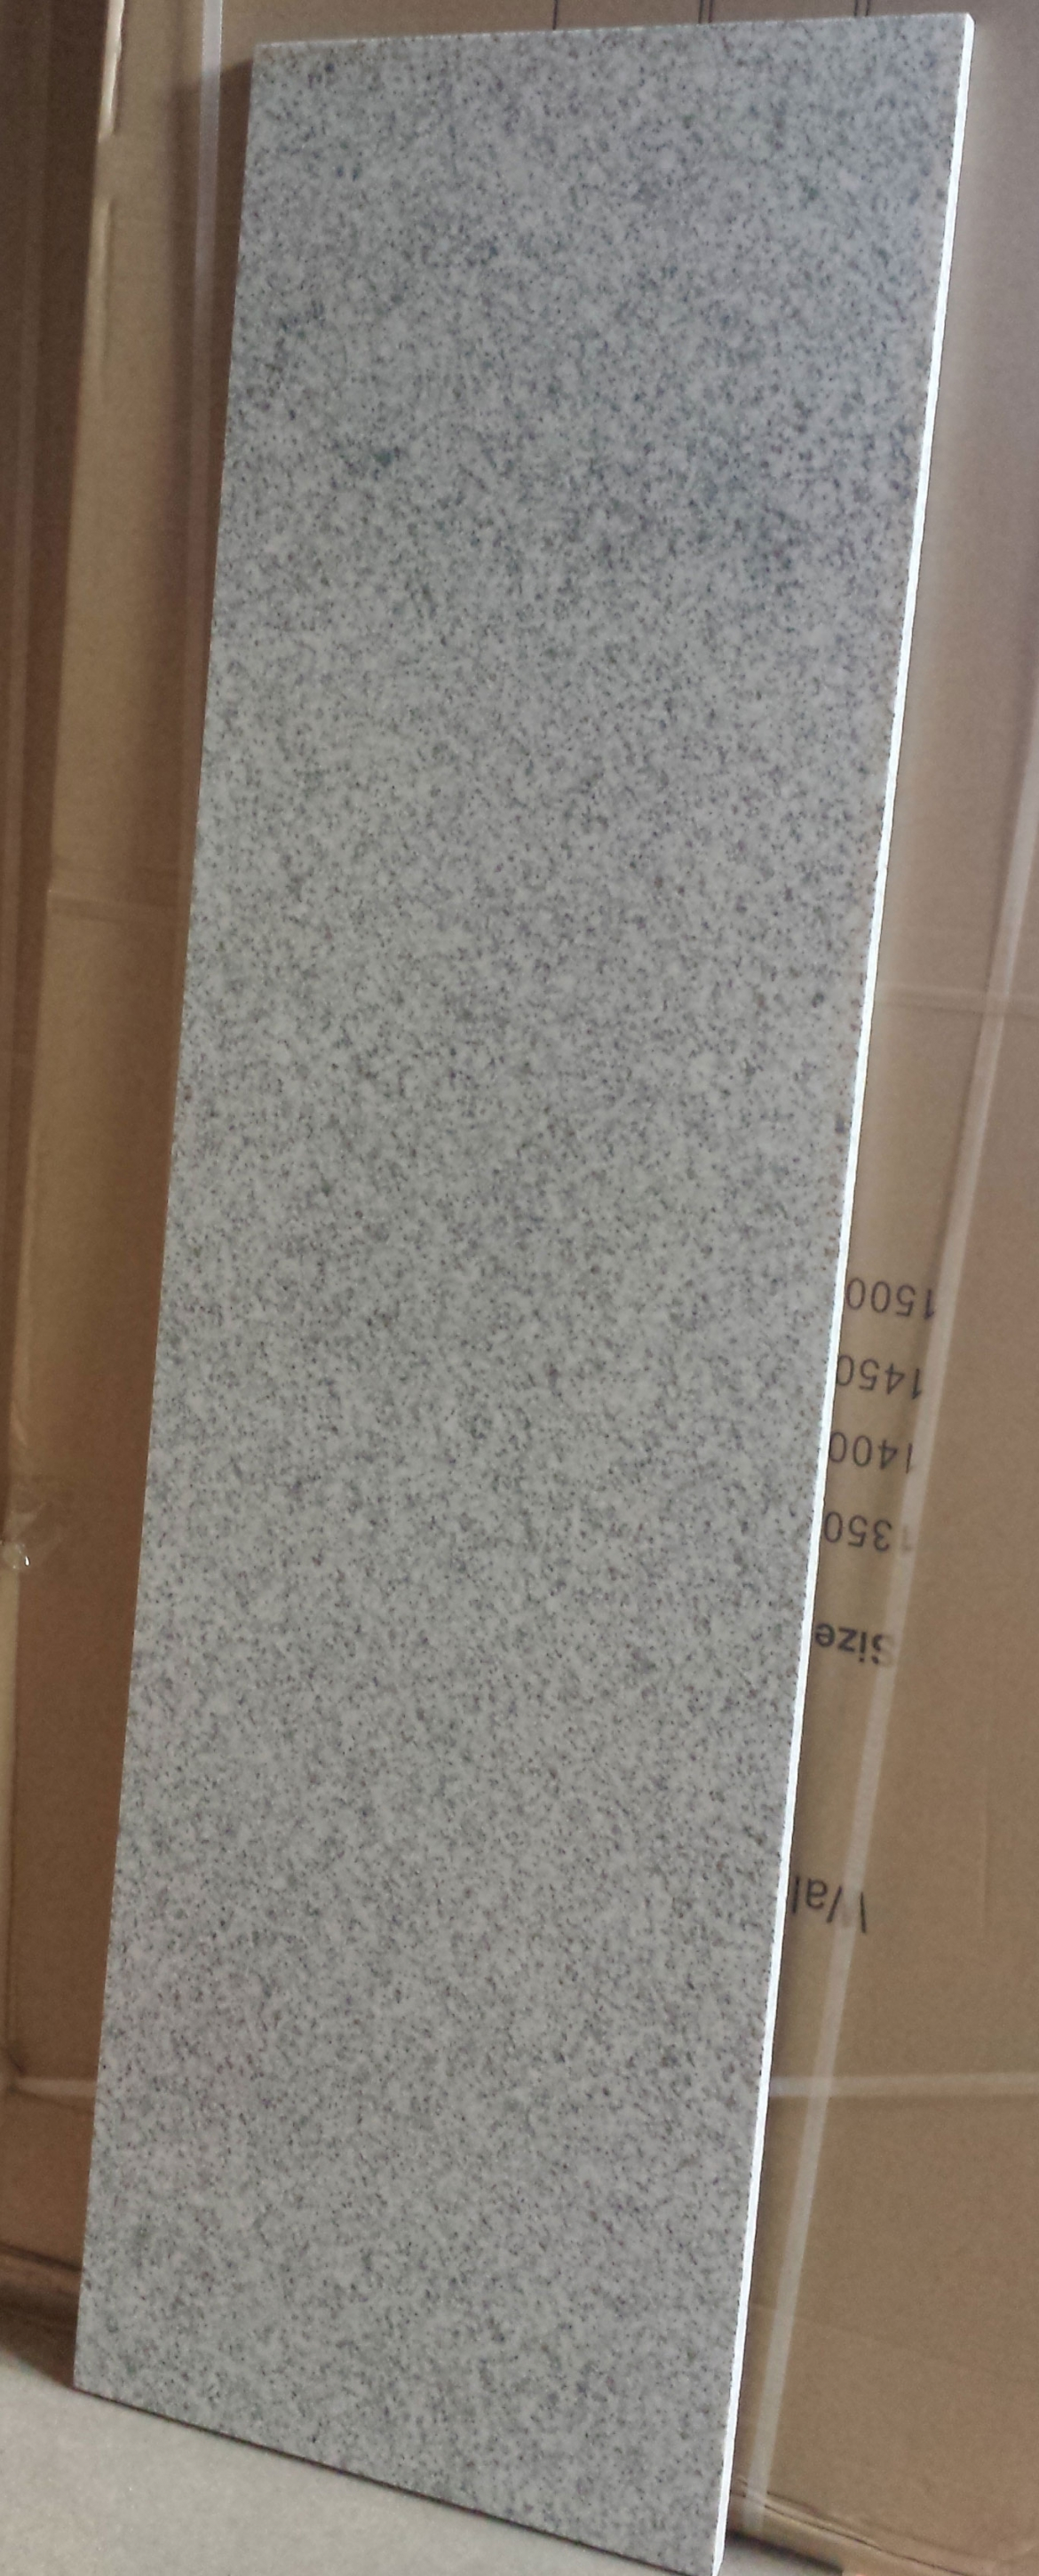 Black/White Granite Bench top for bathroom vanity [1200×470 mm]